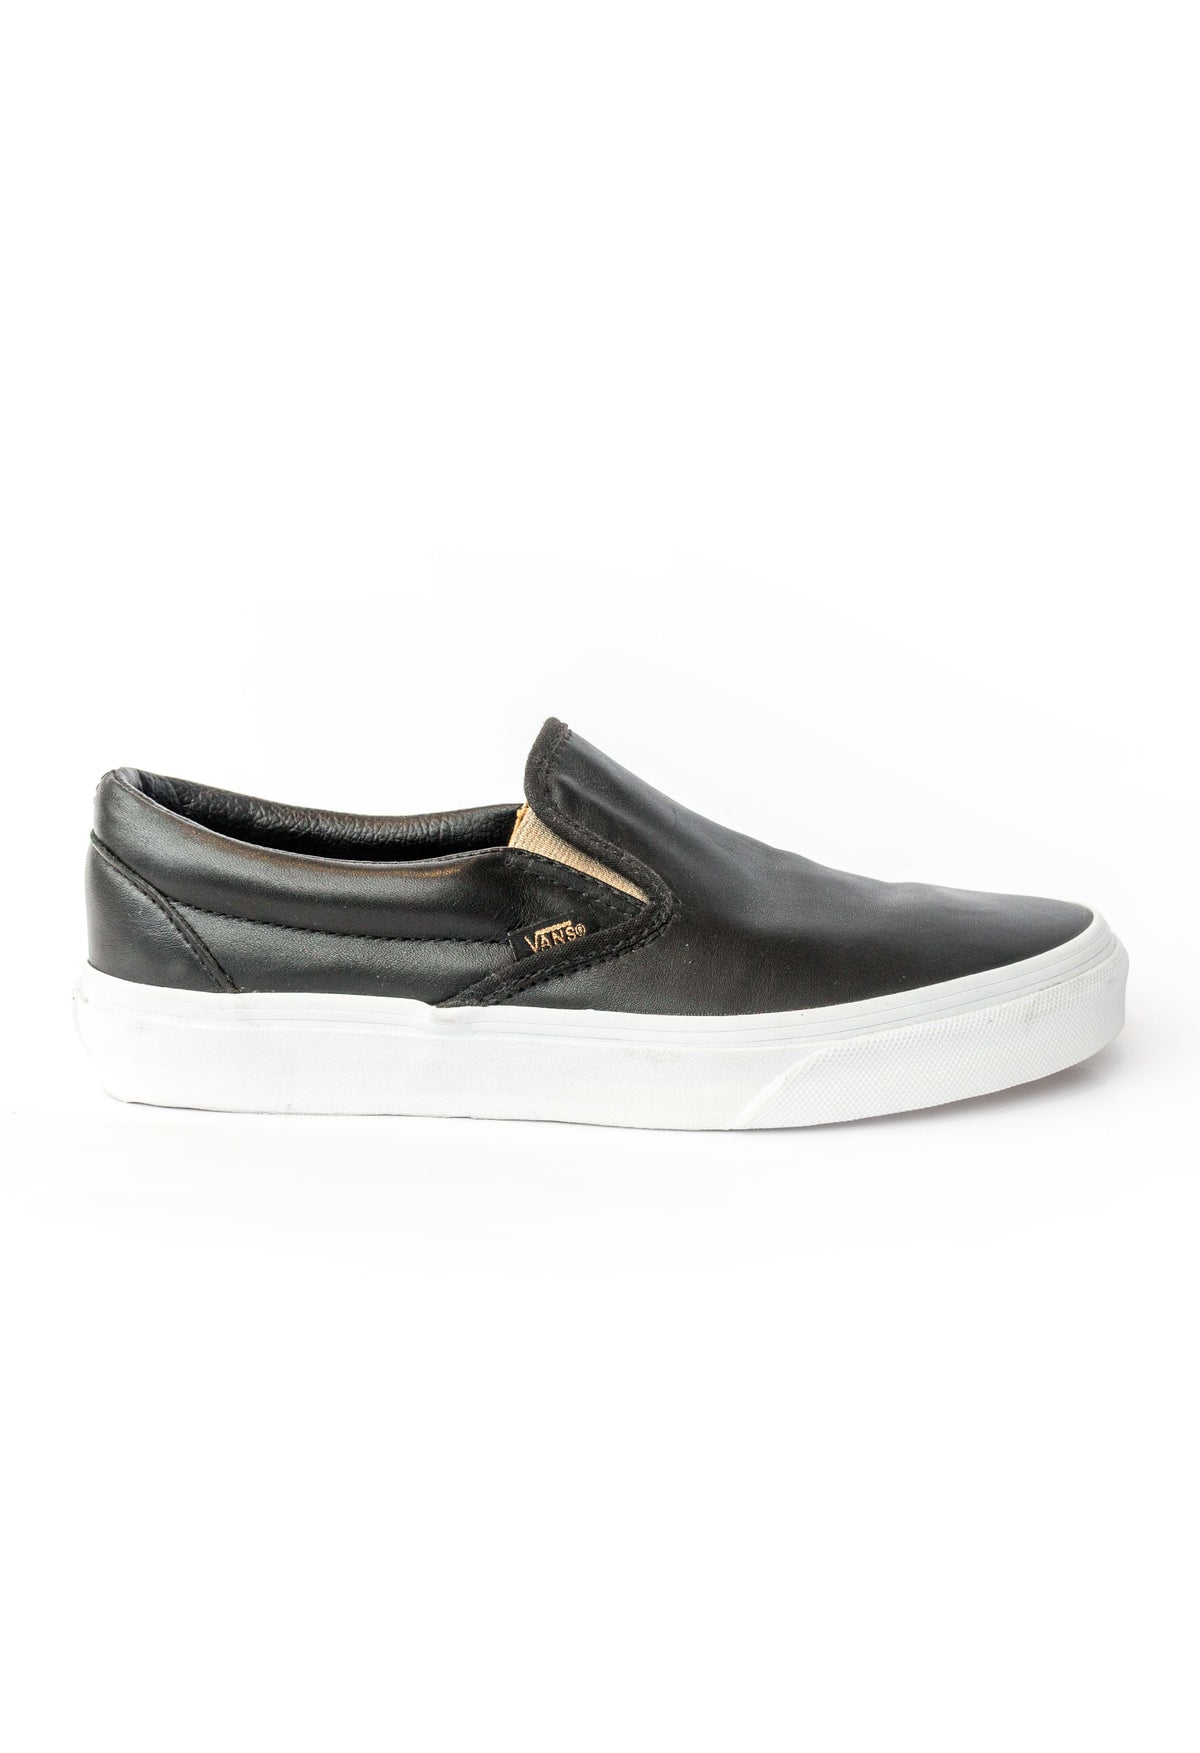 womens vans shoes slip on nz